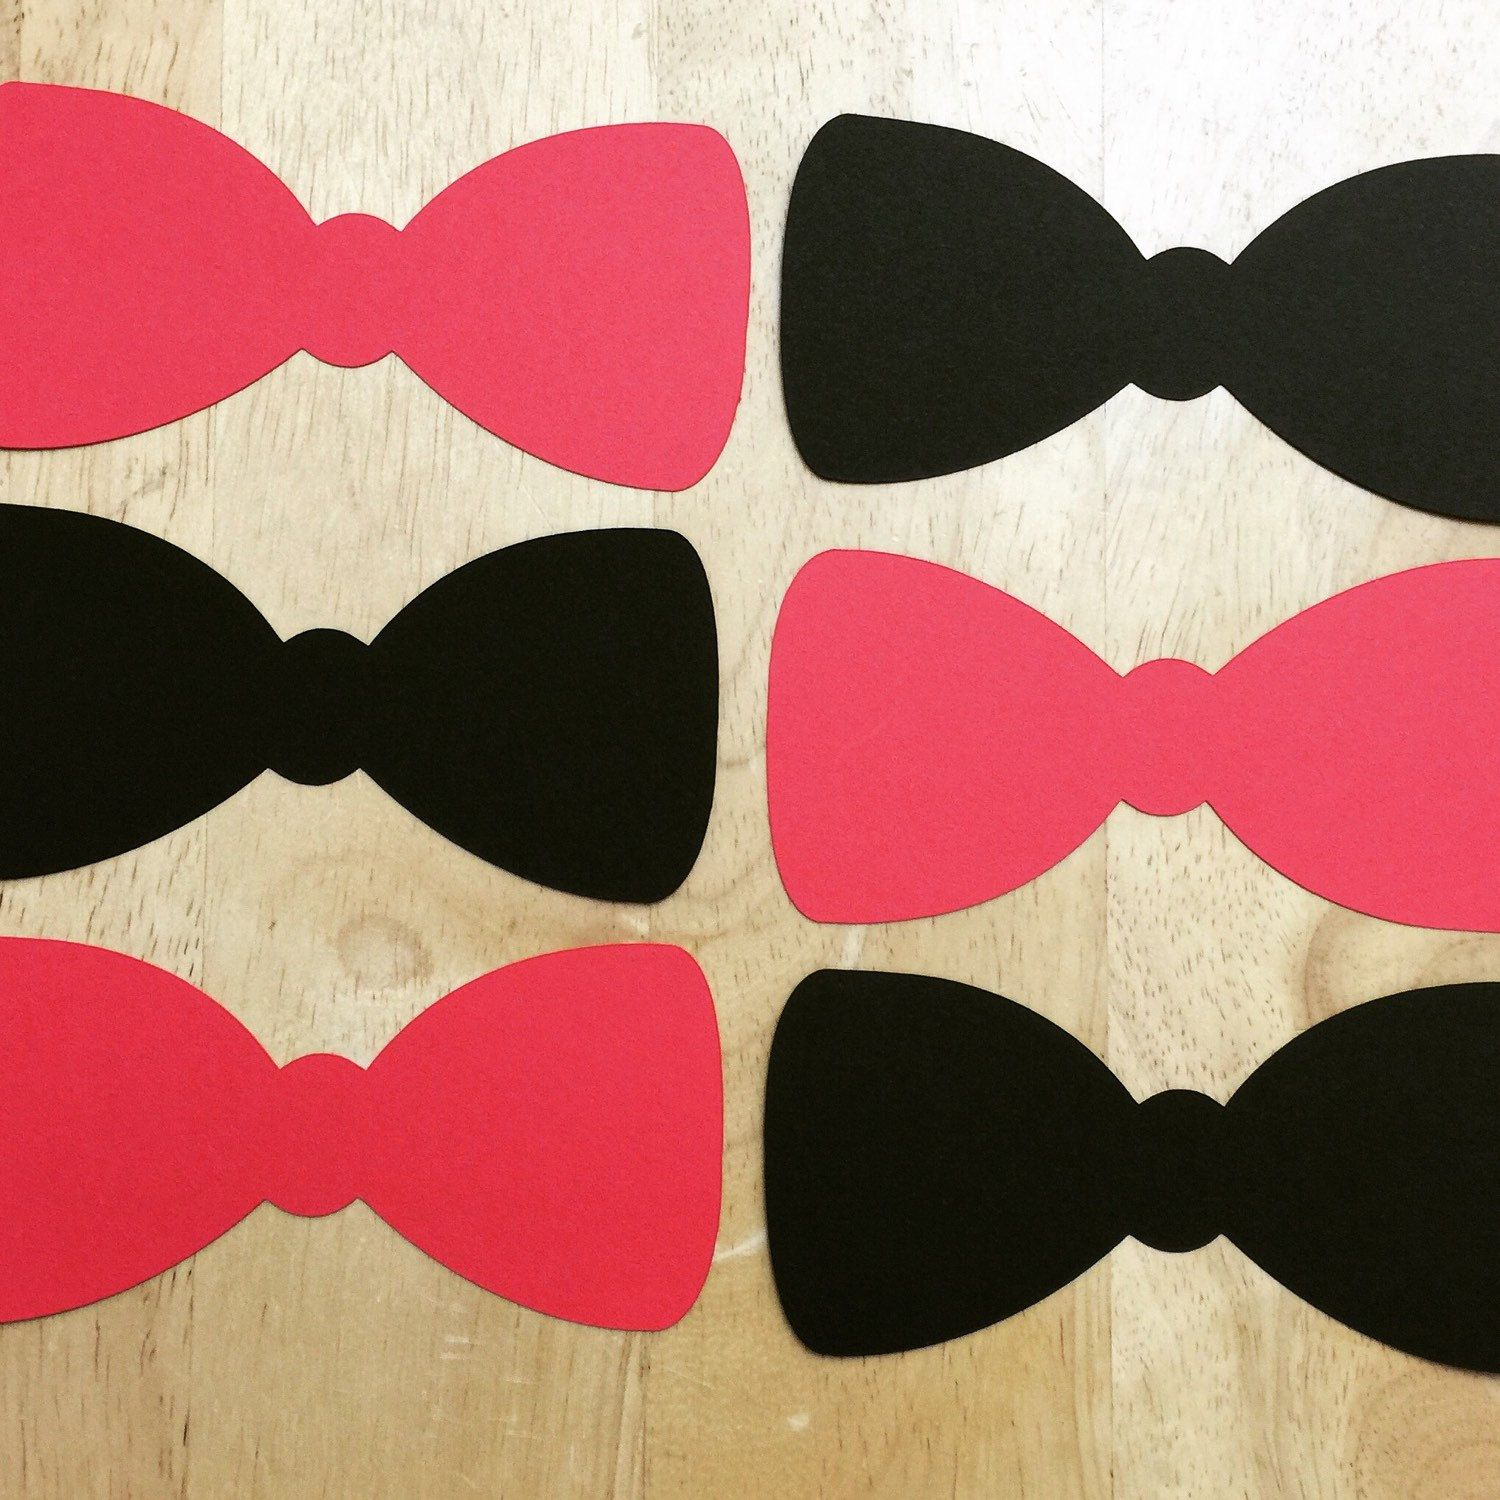 Order packaged and ready to be shipped. #cutouts #bowtie #customorder #etsy #diecut #partydecorations #babyshower #photoprop #invitation #centerpiece